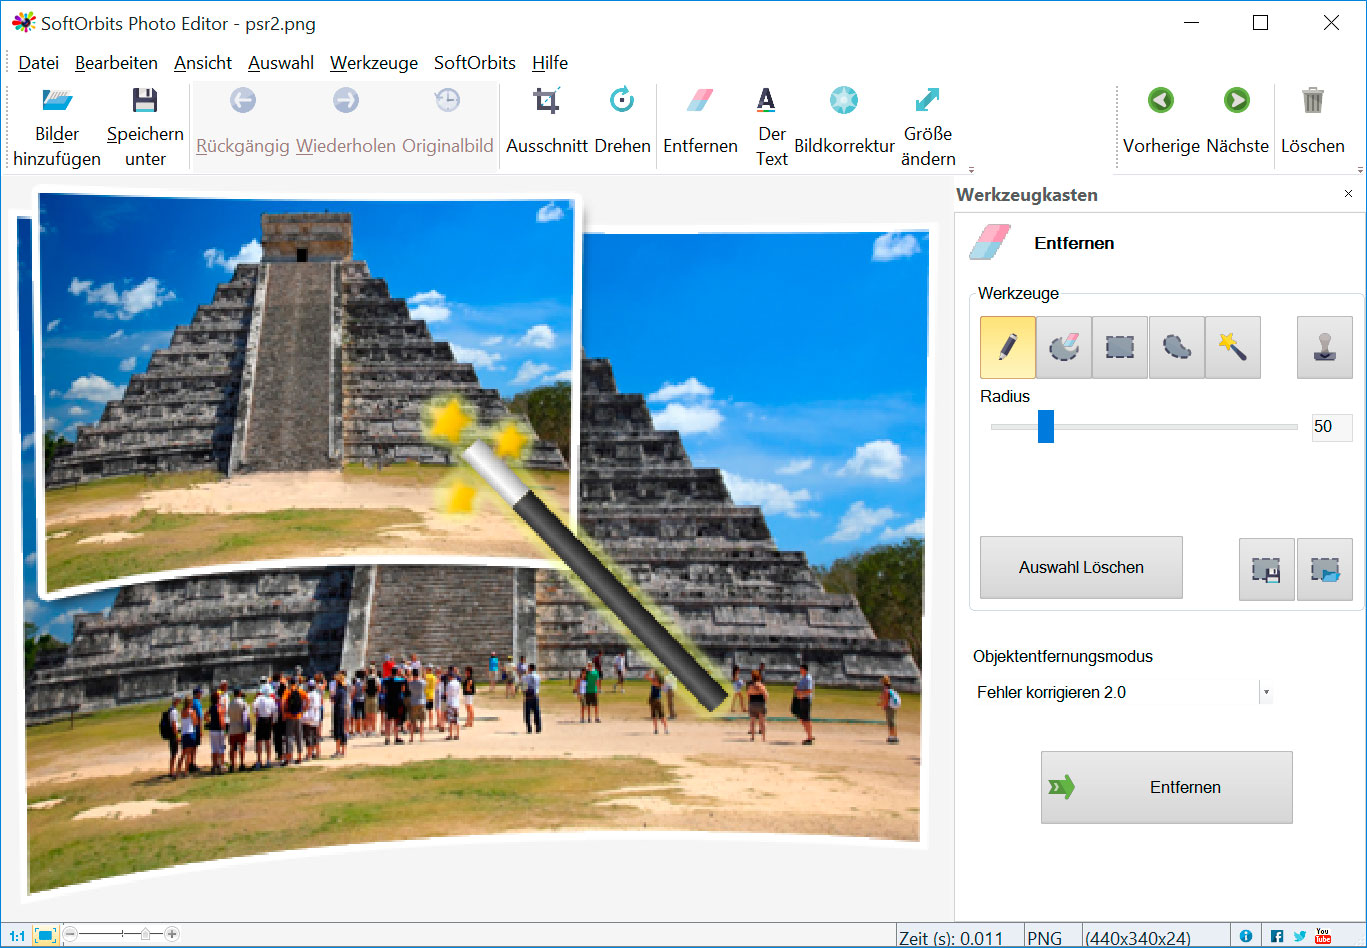 SoftOrbits Photo Editor